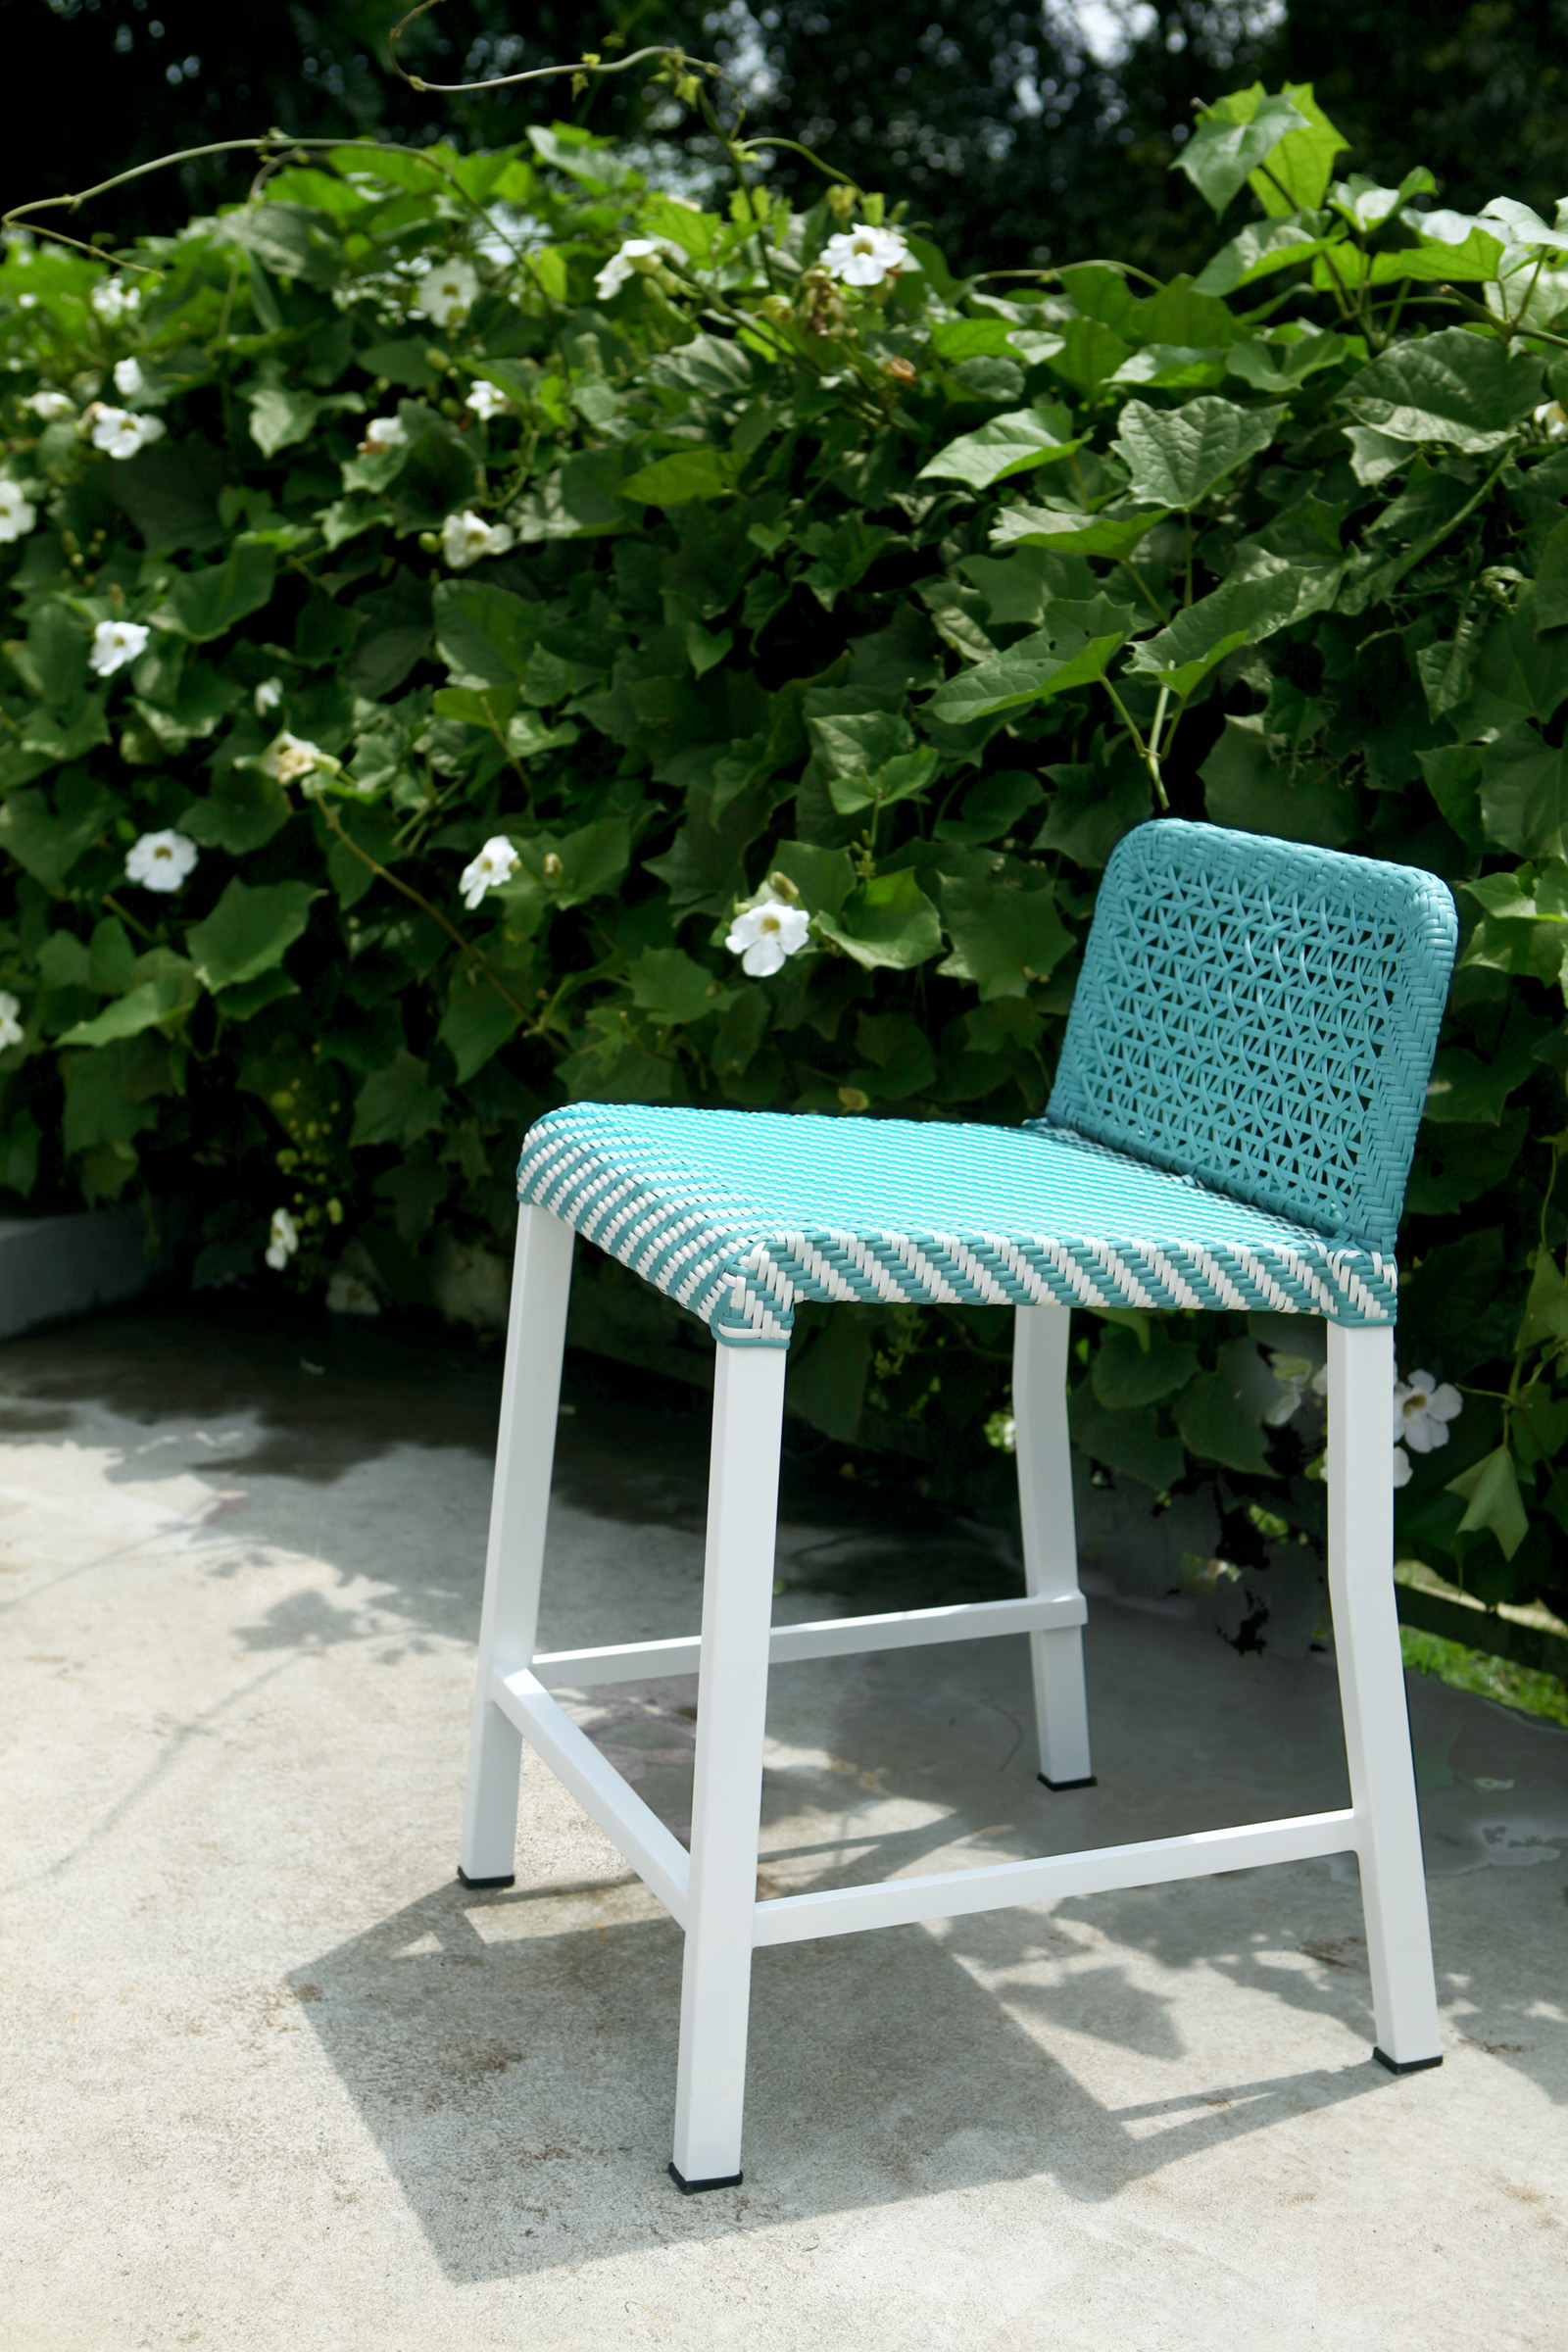 4L Backrest Stool